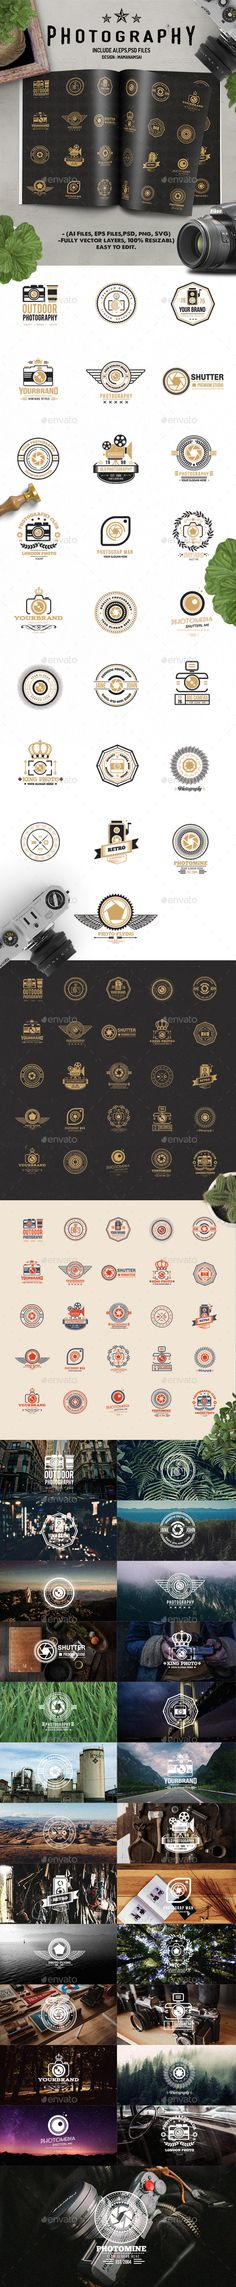 25 Photography Logo Design Template PSD, Vector EPS, AI Illustrator. Download here: https://graphicriver.net/item/25-photography-logo-design/17440214?ref=ksioks